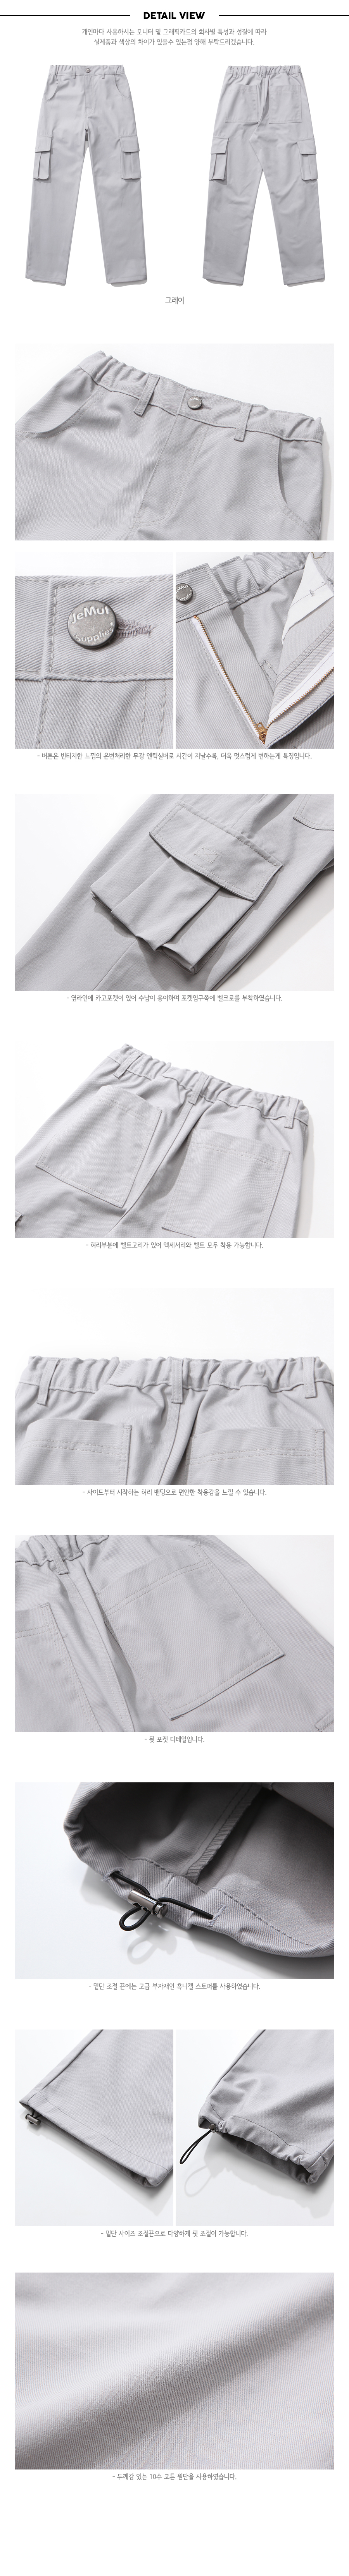 20181017_youth_wide_cargo_pants_gray_yh.jpg